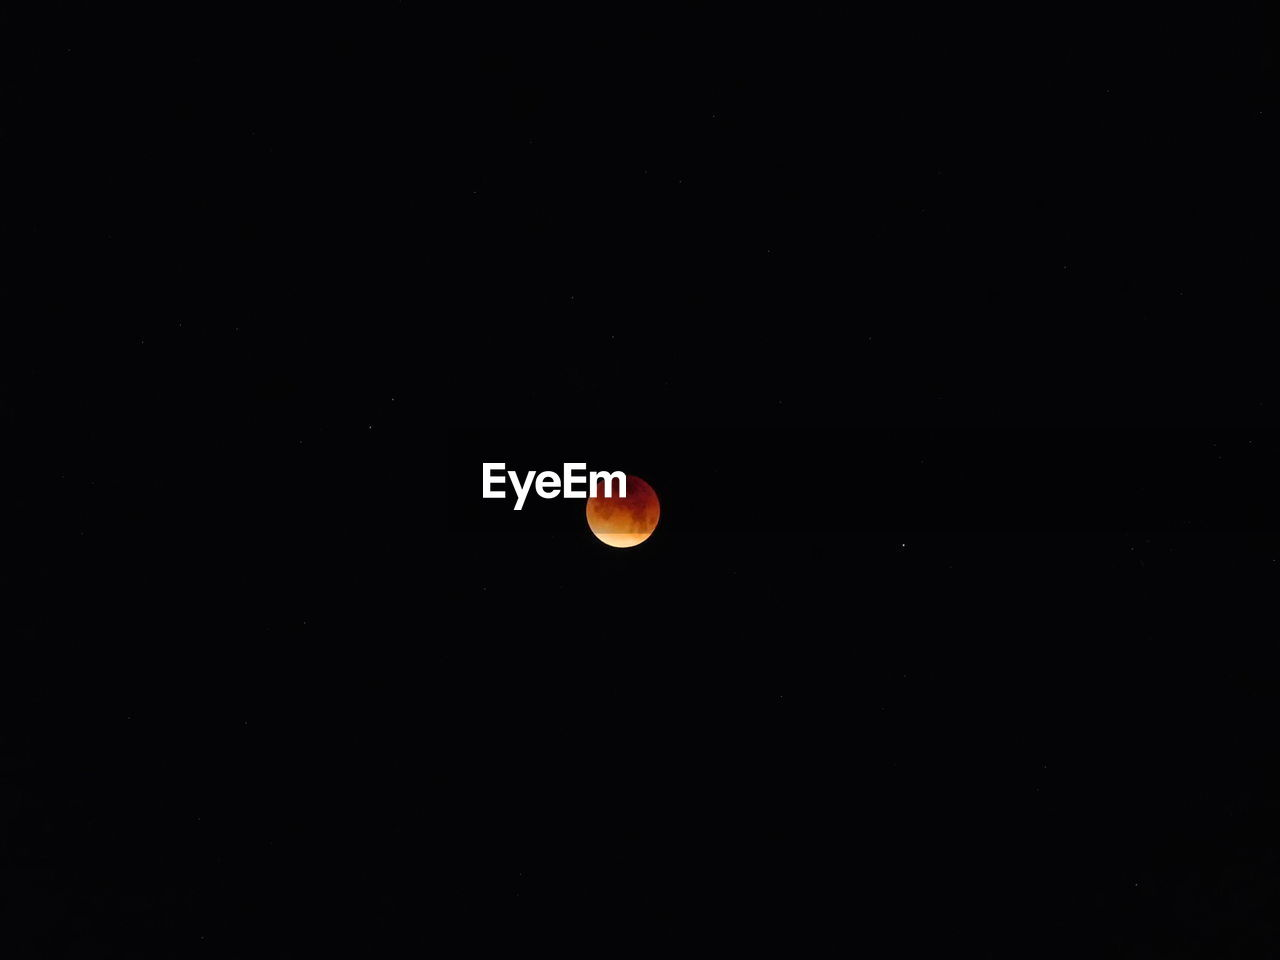 moon, eclipse, astronomy, copy space, beauty in nature, nature, moon surface, scenics, night, tranquil scene, planetary moon, no people, tranquility, outdoors, clear sky, space exploration, space, half moon, crescent, sky